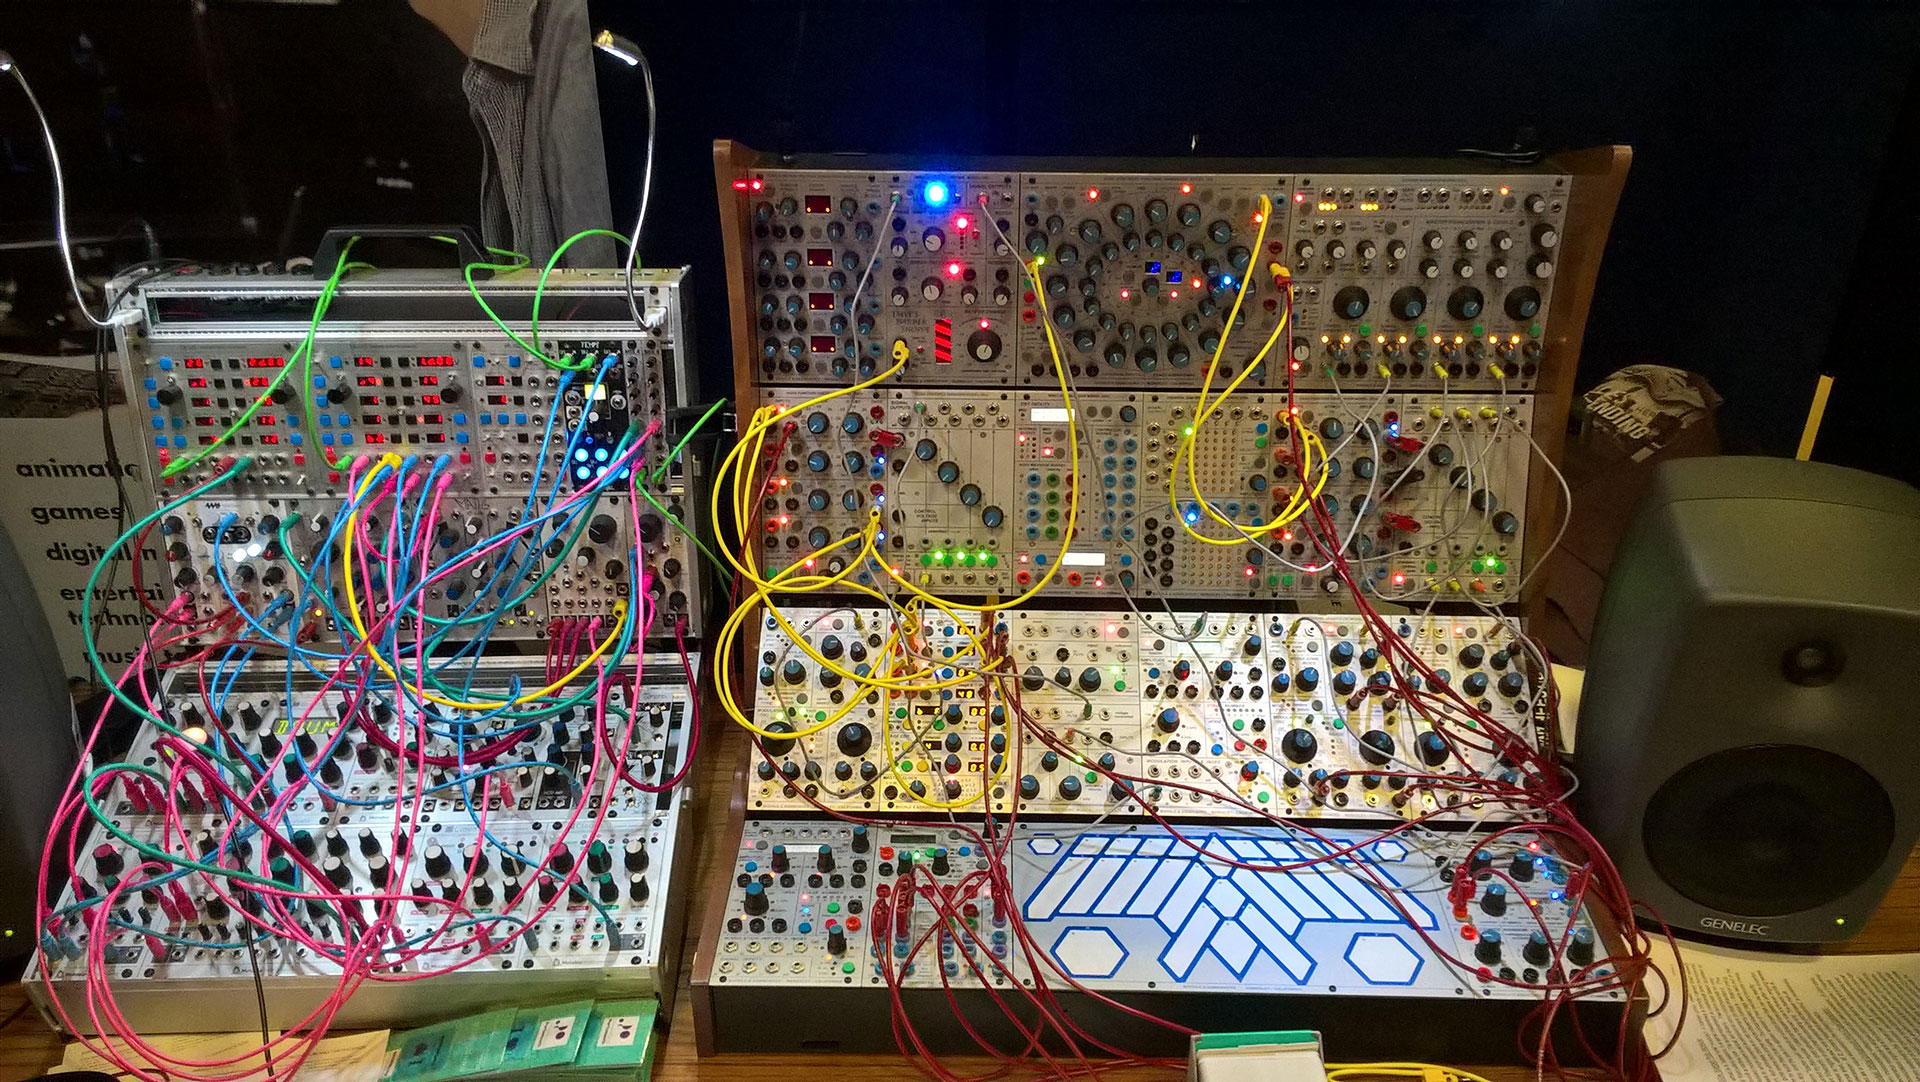 Where do you start with modular? - Molten Modular